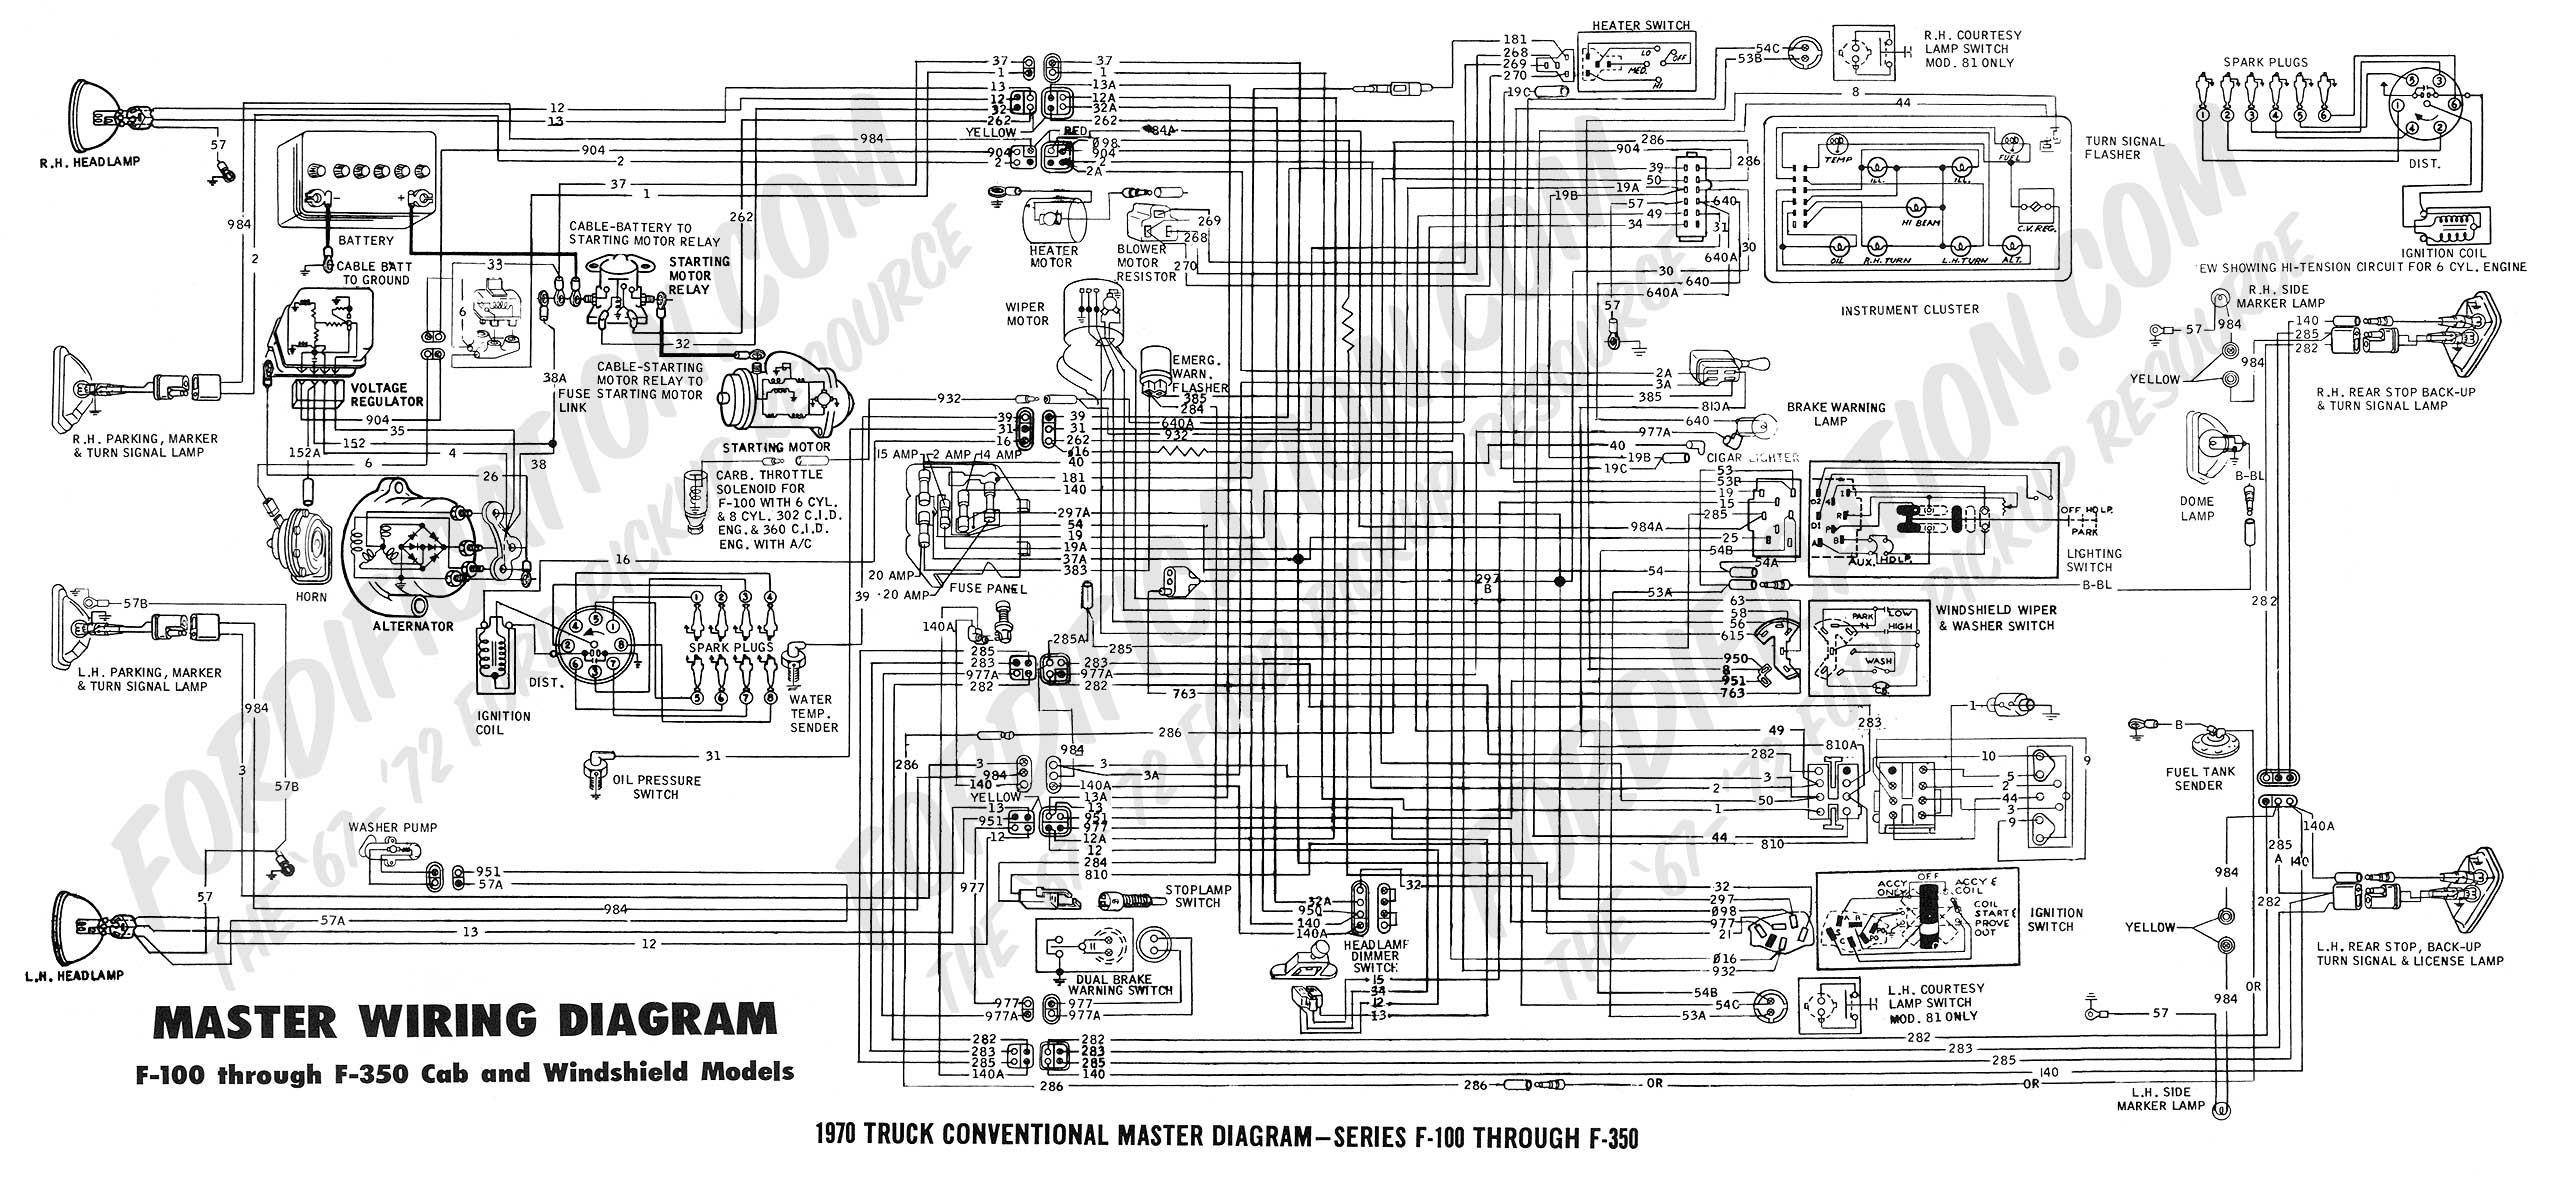 wiring diagram 70_master ford wiring harness diagrams ford wiring diagrams instruction Winnebago Wiring Diagrams 1979 1980 at webbmarketing.co